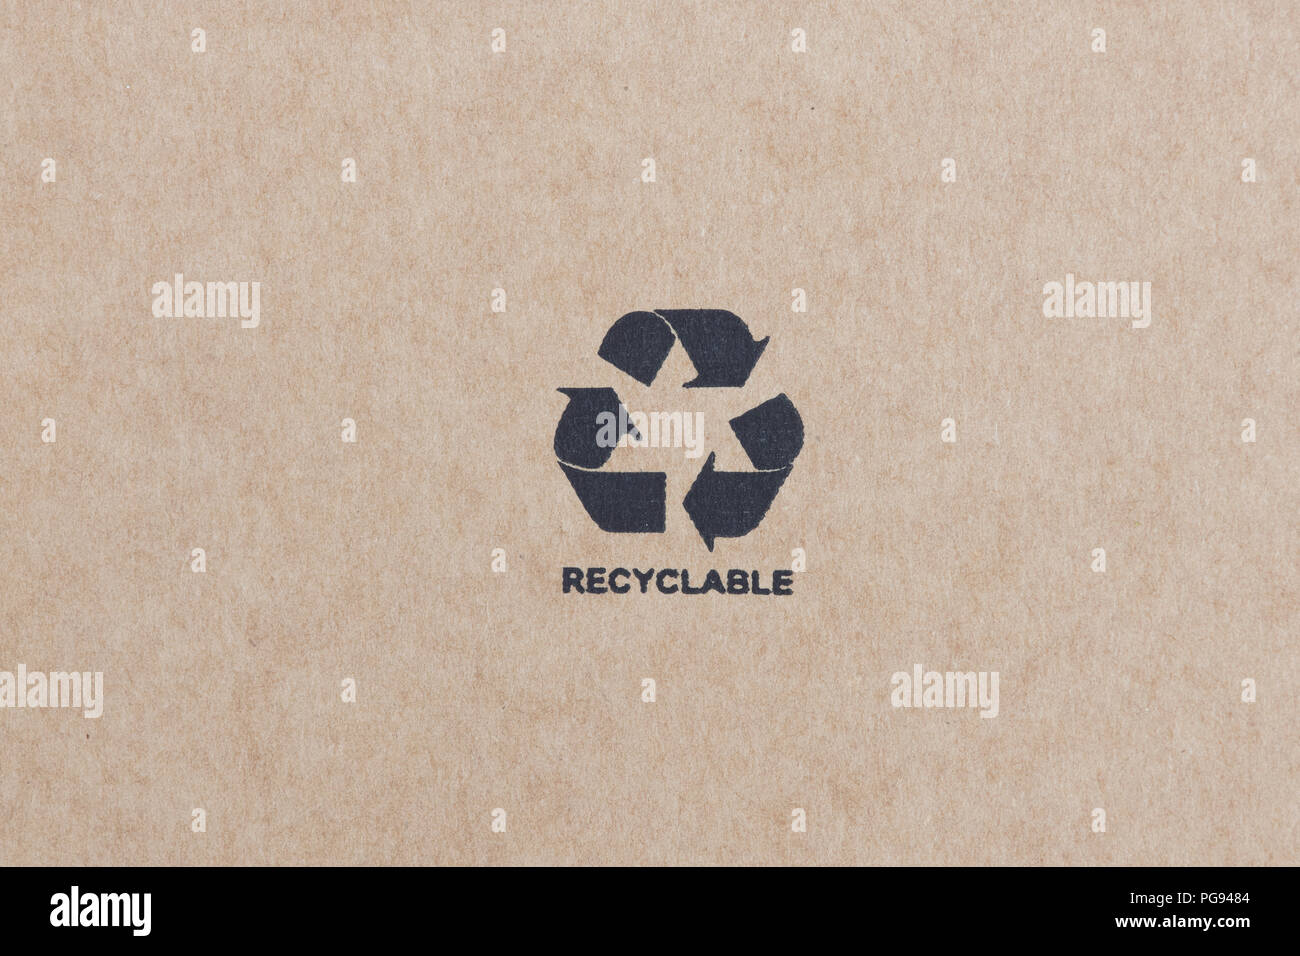 Printed Recyclable label on a cardboard box. Recyclable biodegradable cardboard box made with wood from a sustainable forest - Stock Image